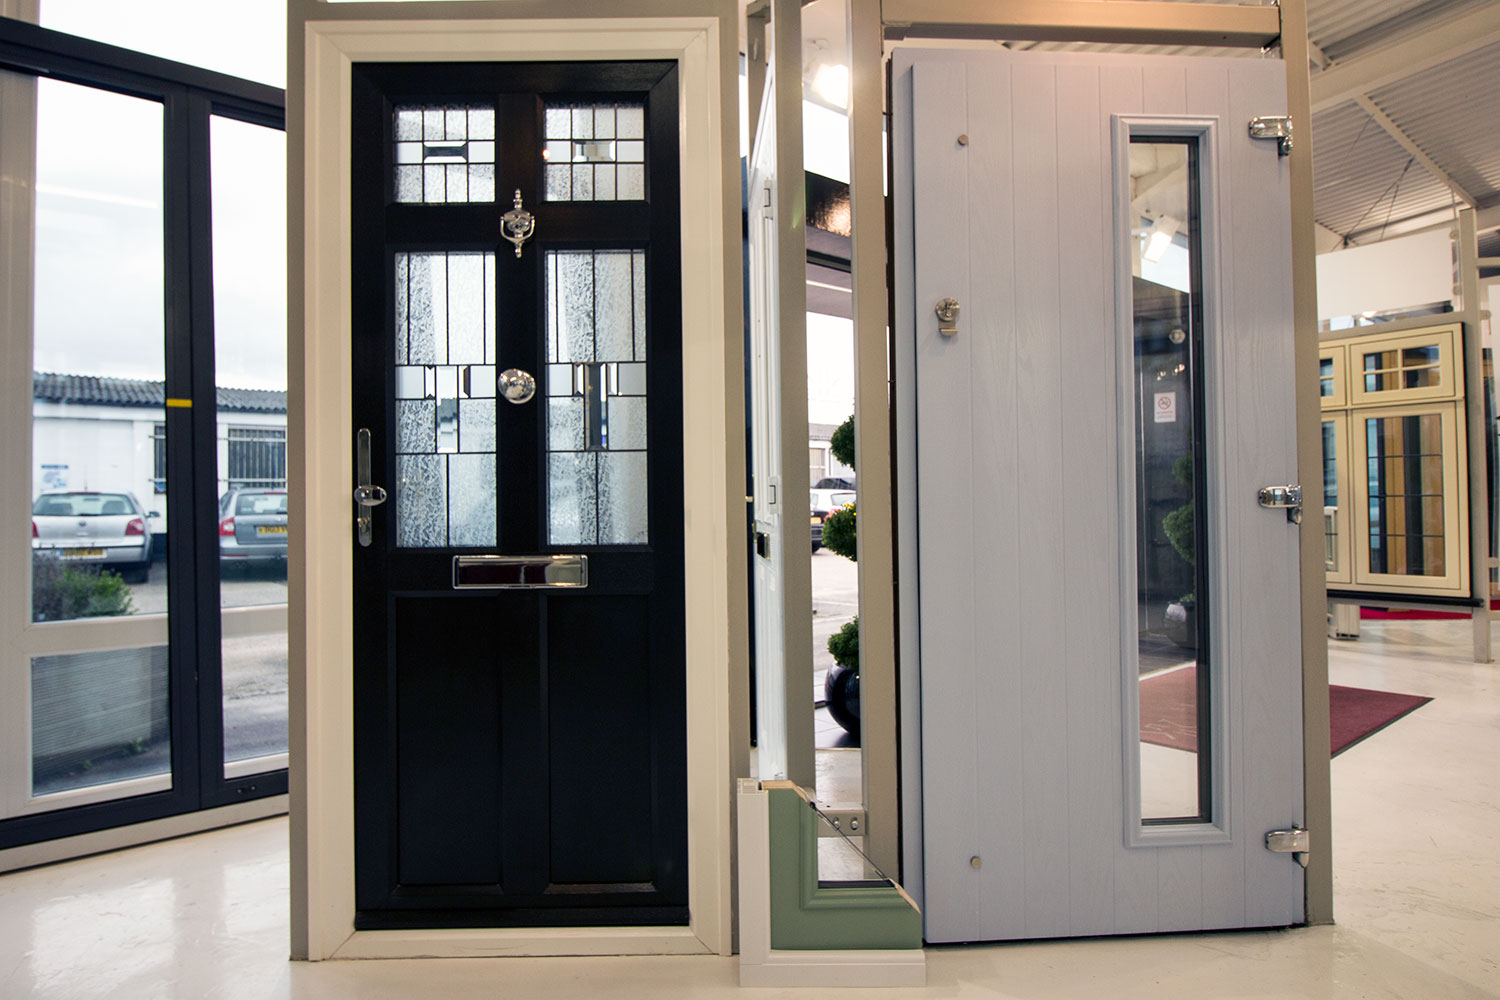 Entrance doors john knight glass composite entrance doors on display in our heswall cheshire showroom rubansaba